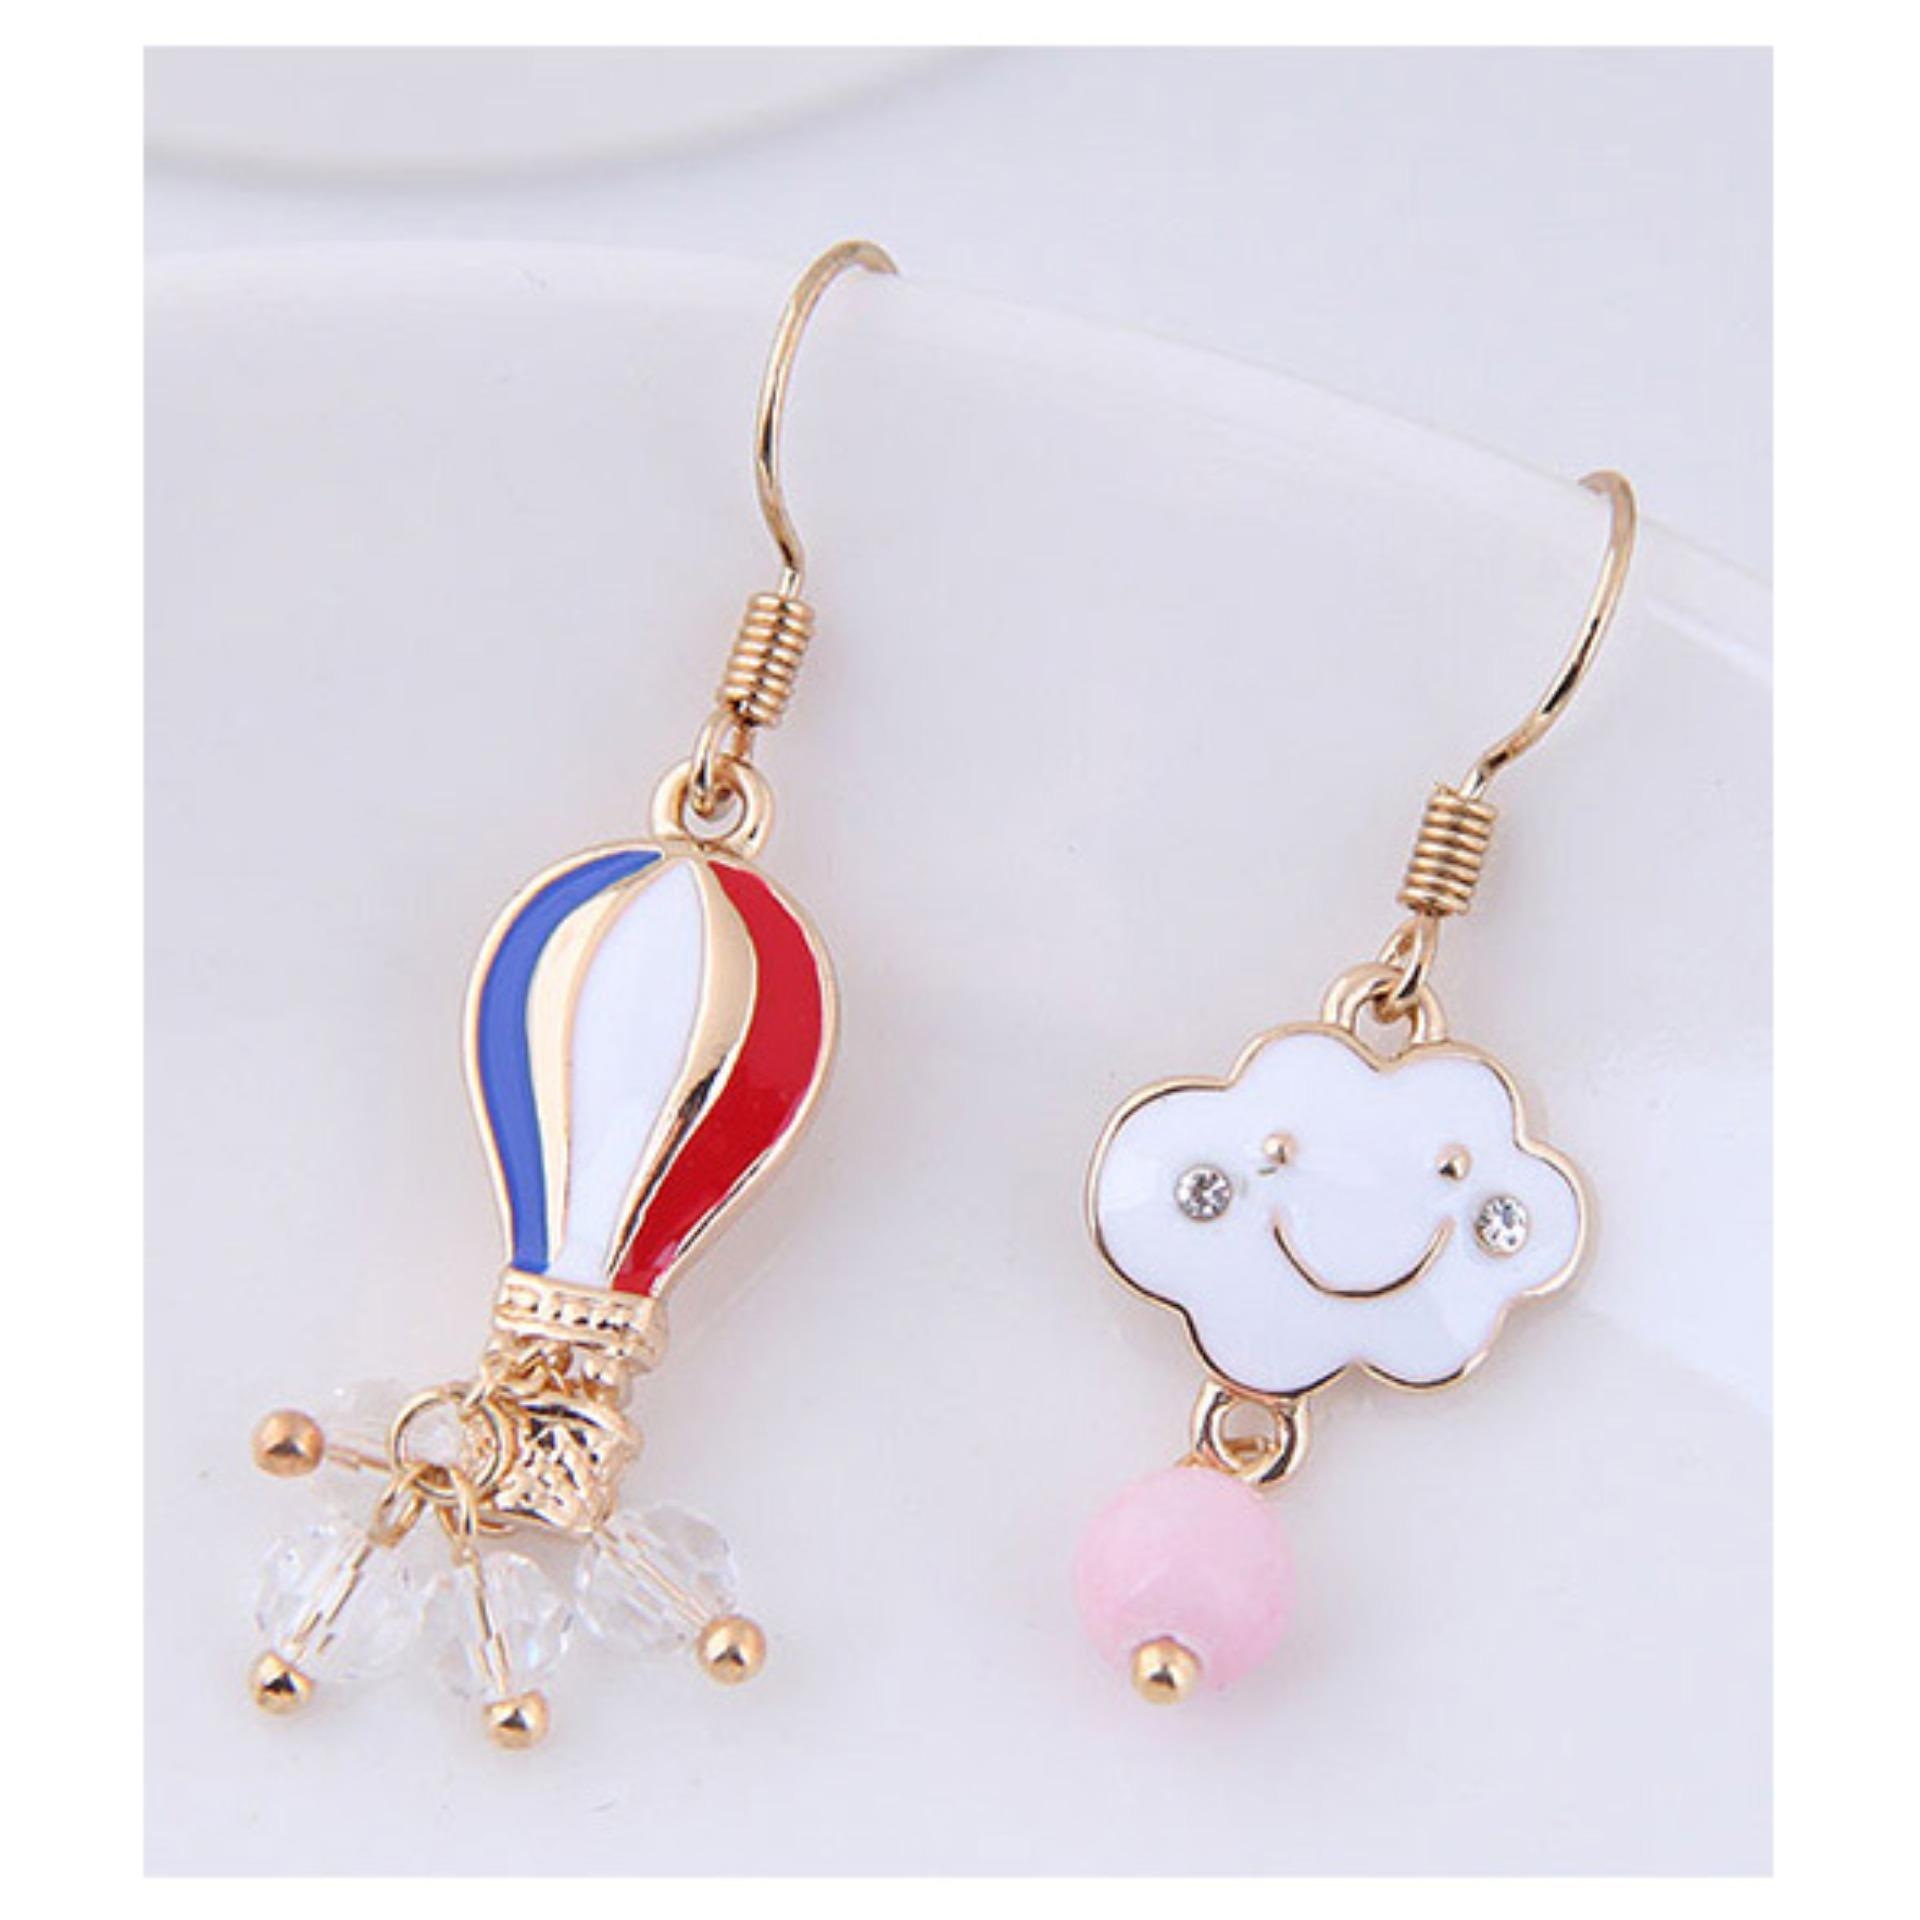 LRC Anting Gantung Fashion Red+blue+gold Color Cloud Shape Decorated Earrings